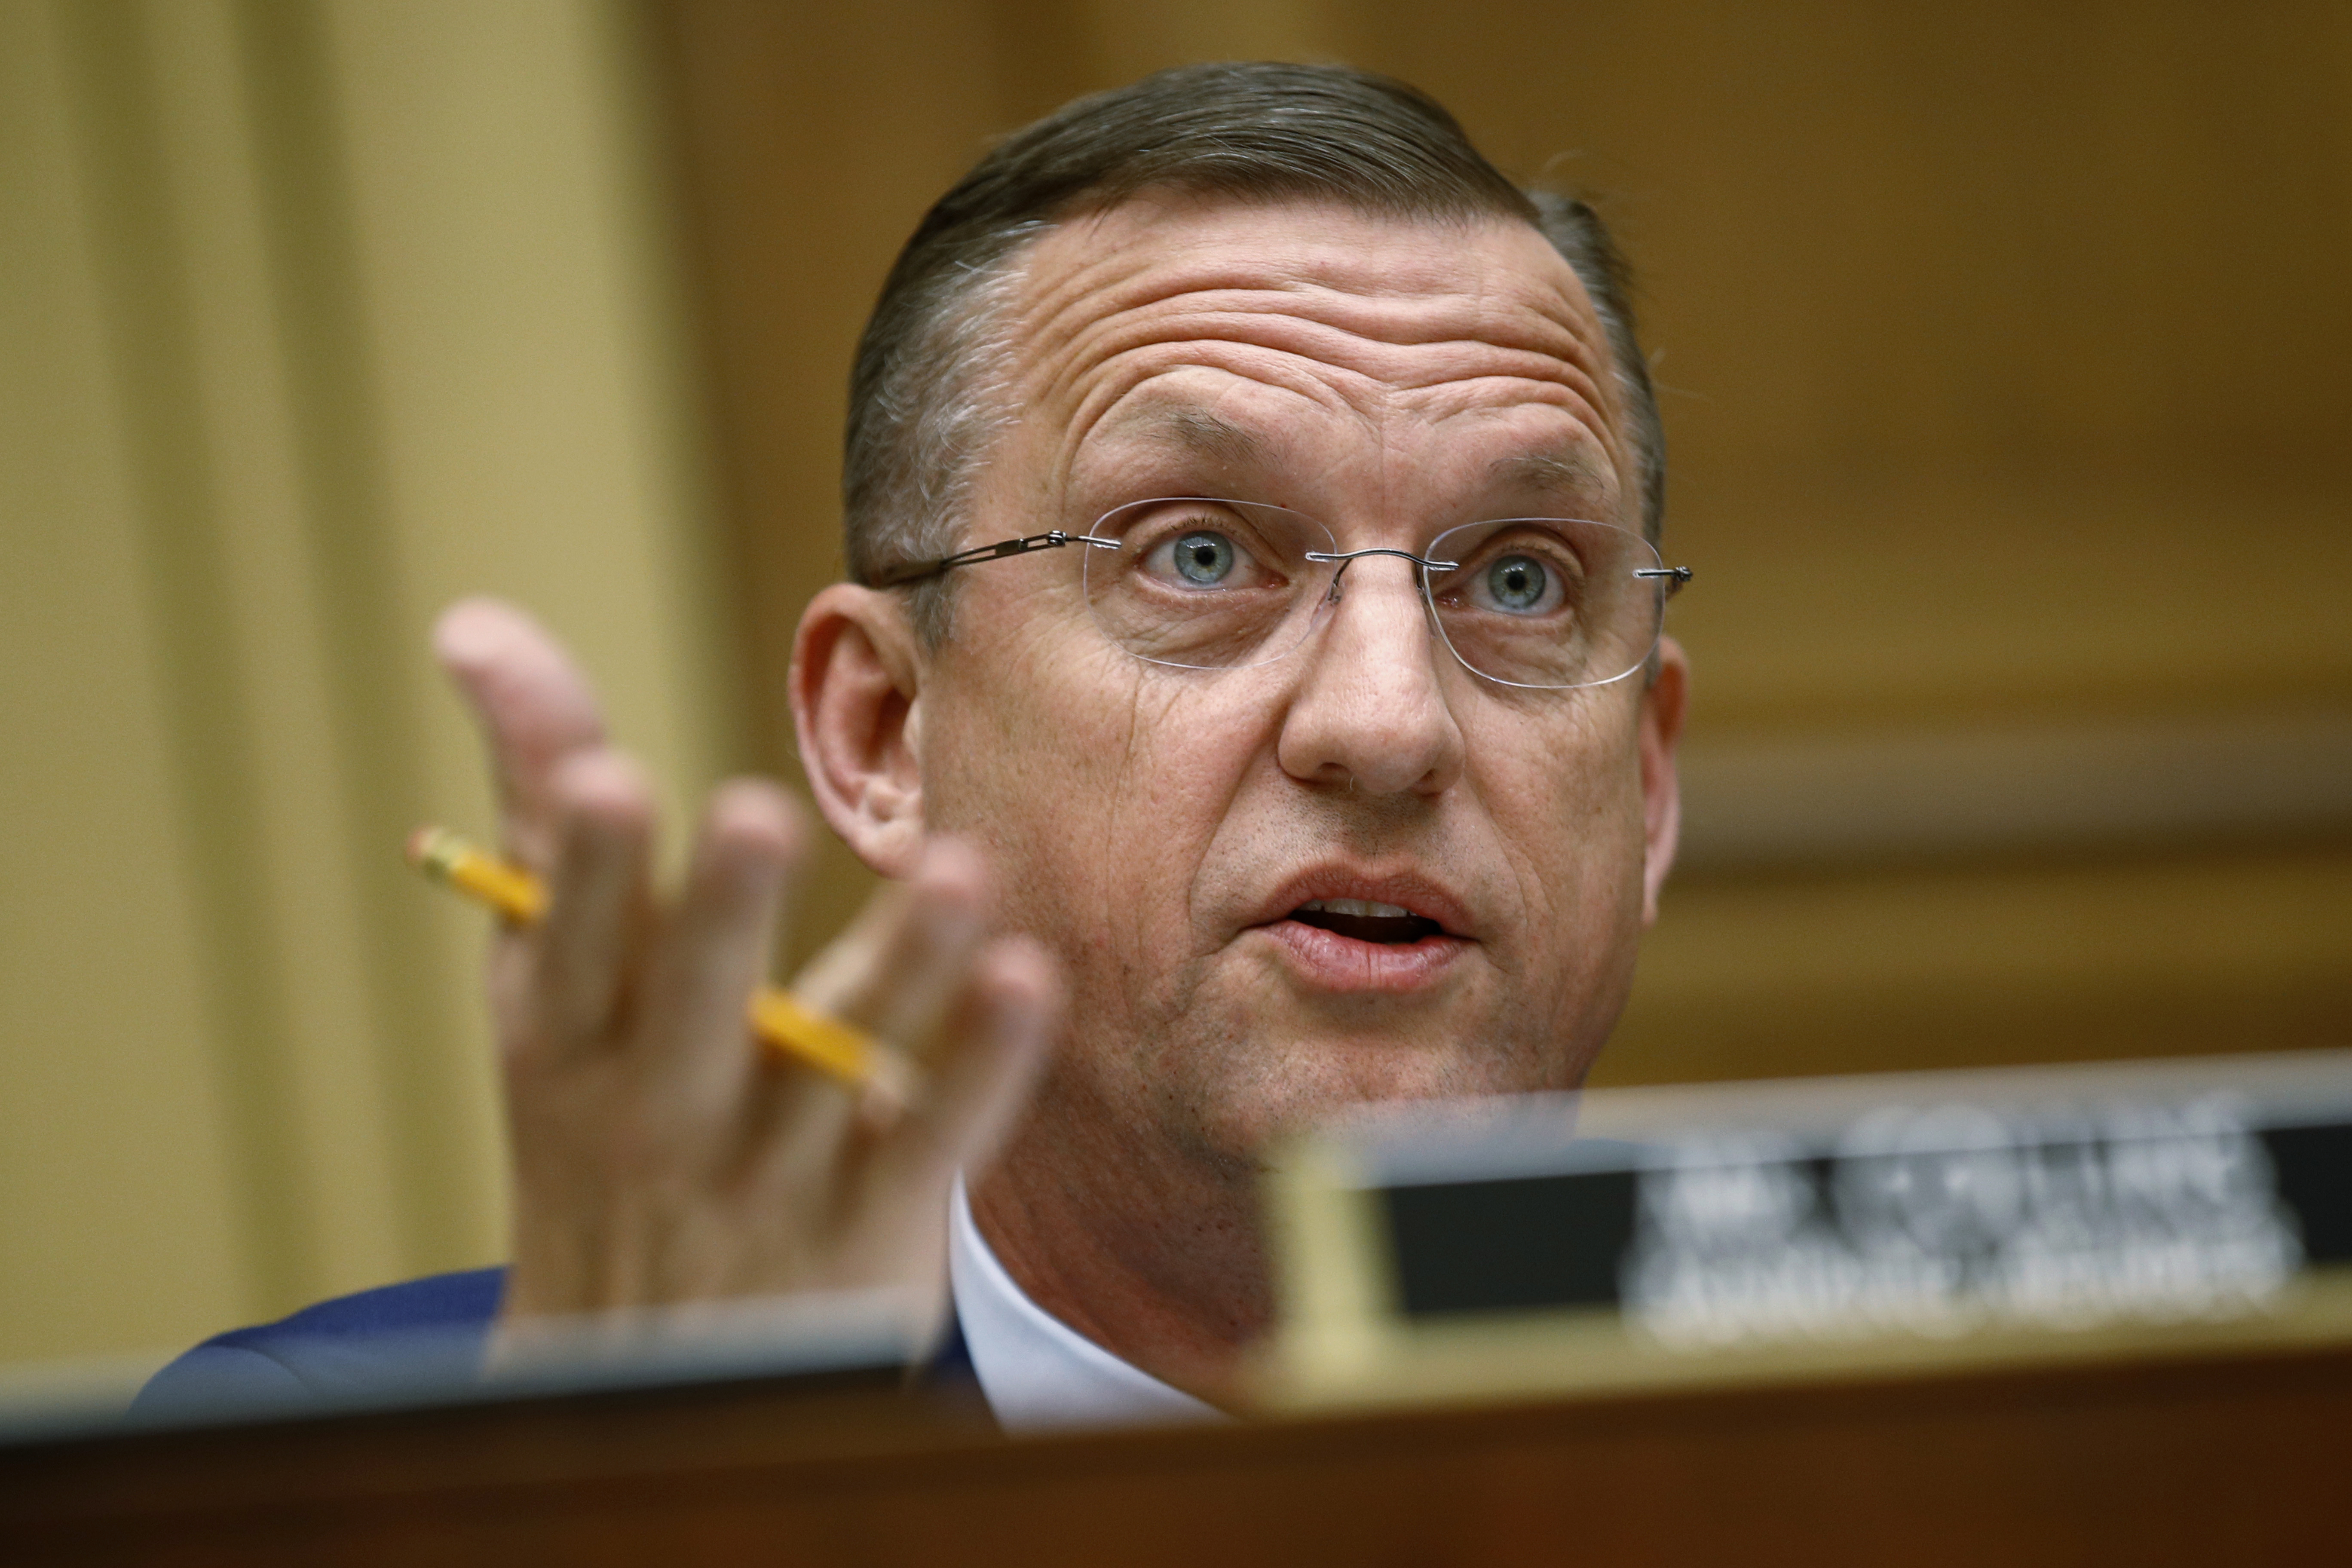 Rep. Doug Collins, R-Ga., ranking member of the House Judiciary Committee, speaks during a hearing without former White House Counsel Don McGahn, who was a key figure in special counsel Robert Mueller's investigation, on Capitol Hill, May 21, 2019.